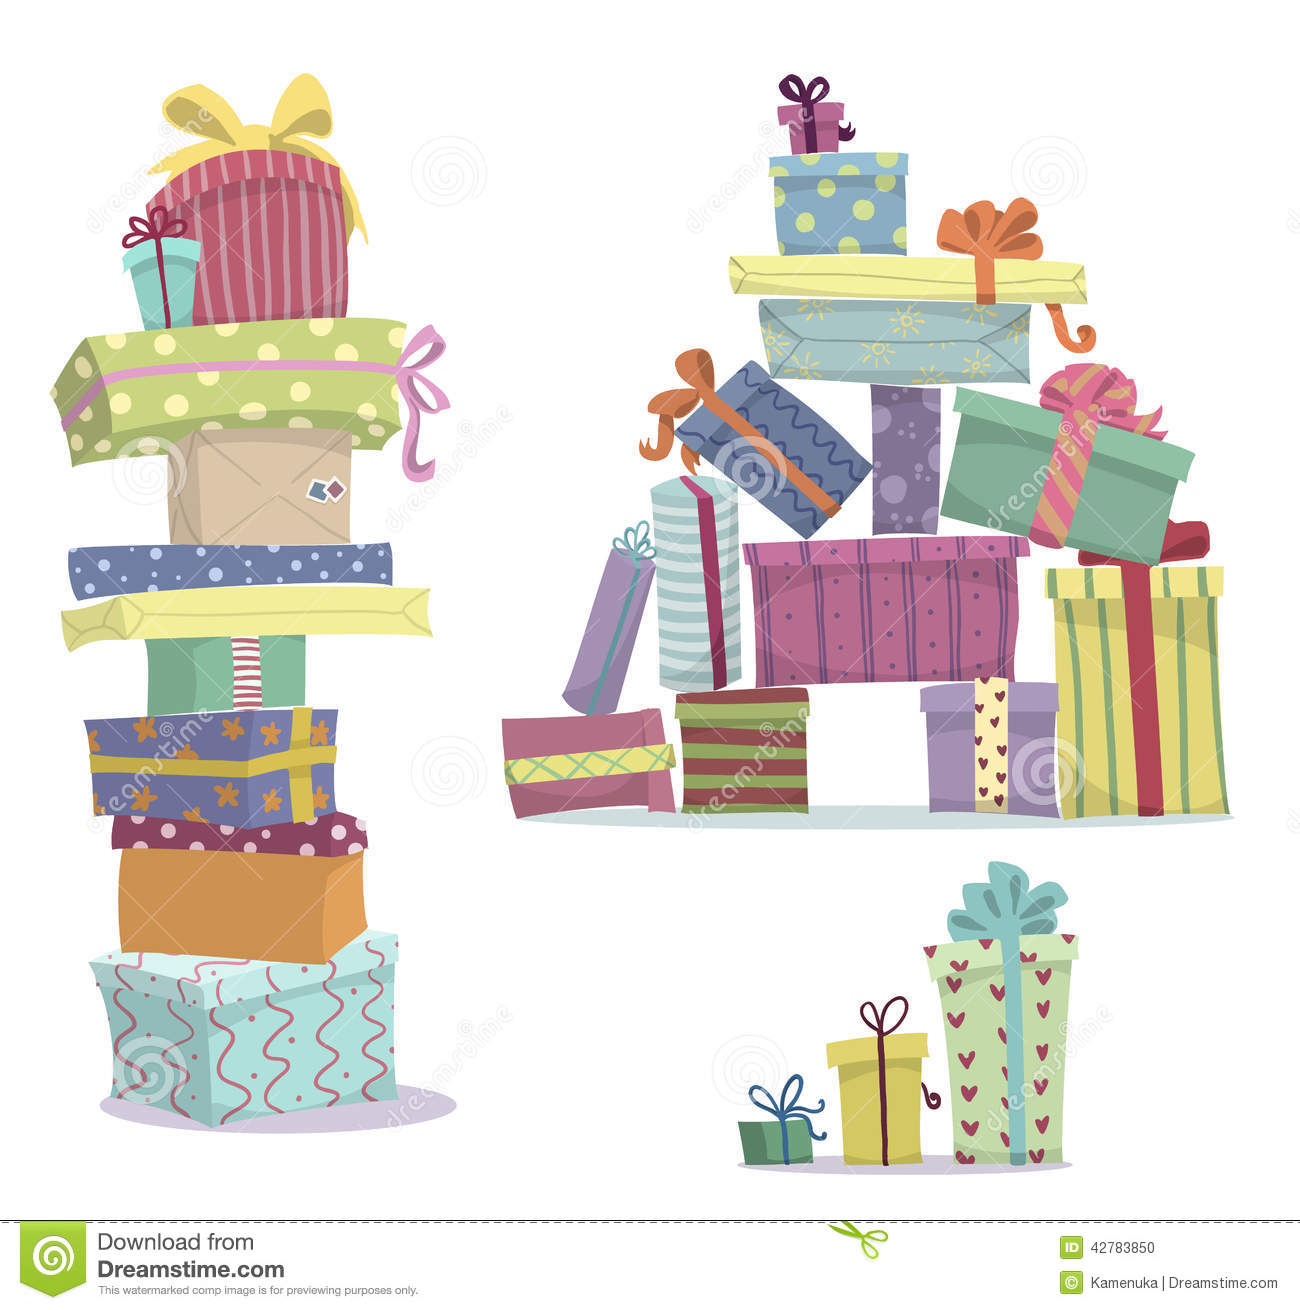 Piles of presents. Doodle heaps of gift boxes